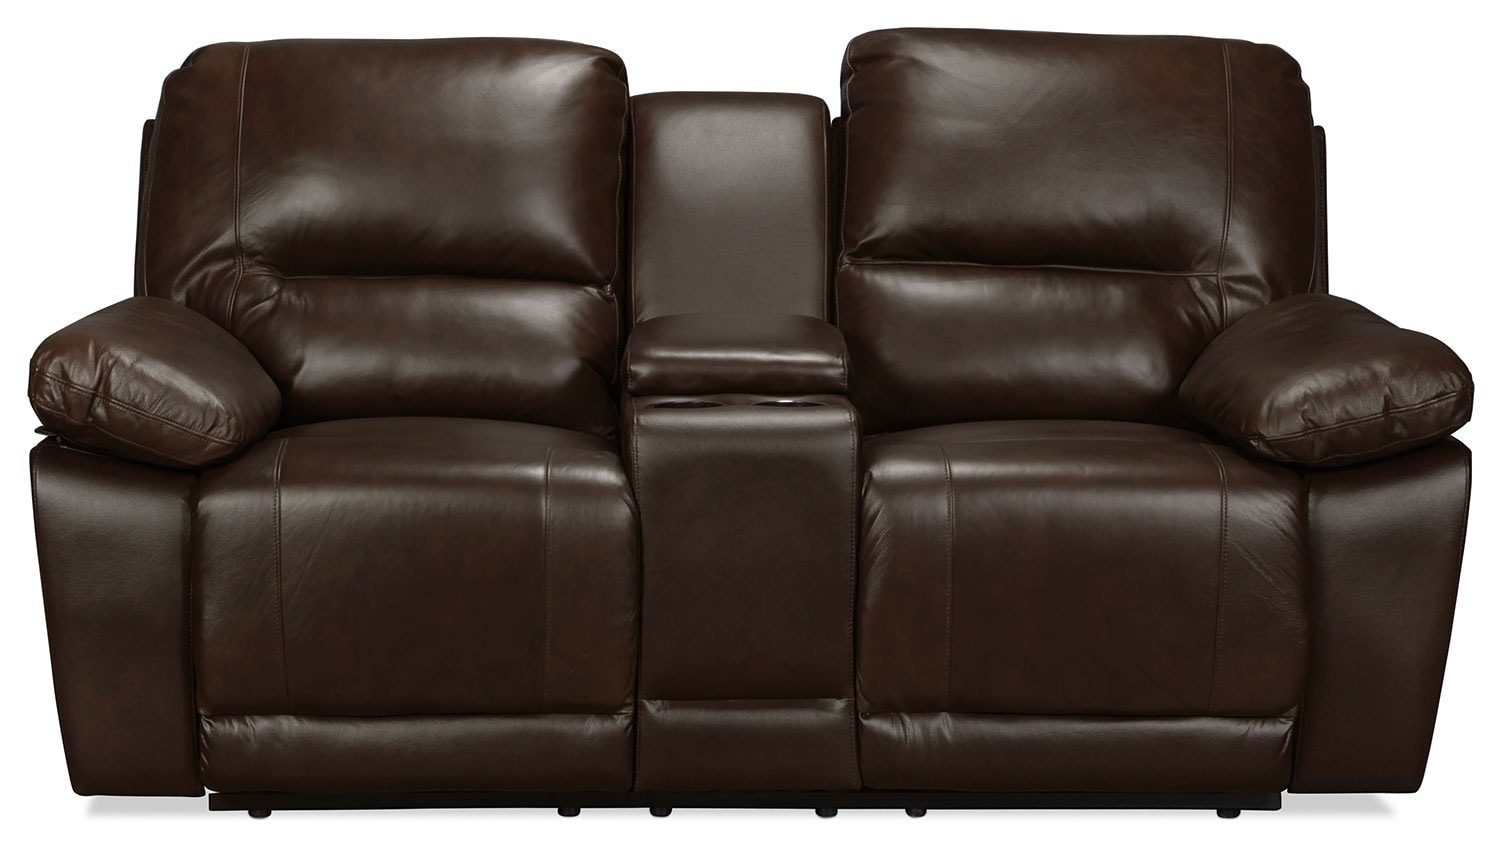 Monette Reclining Loveseat - Brown